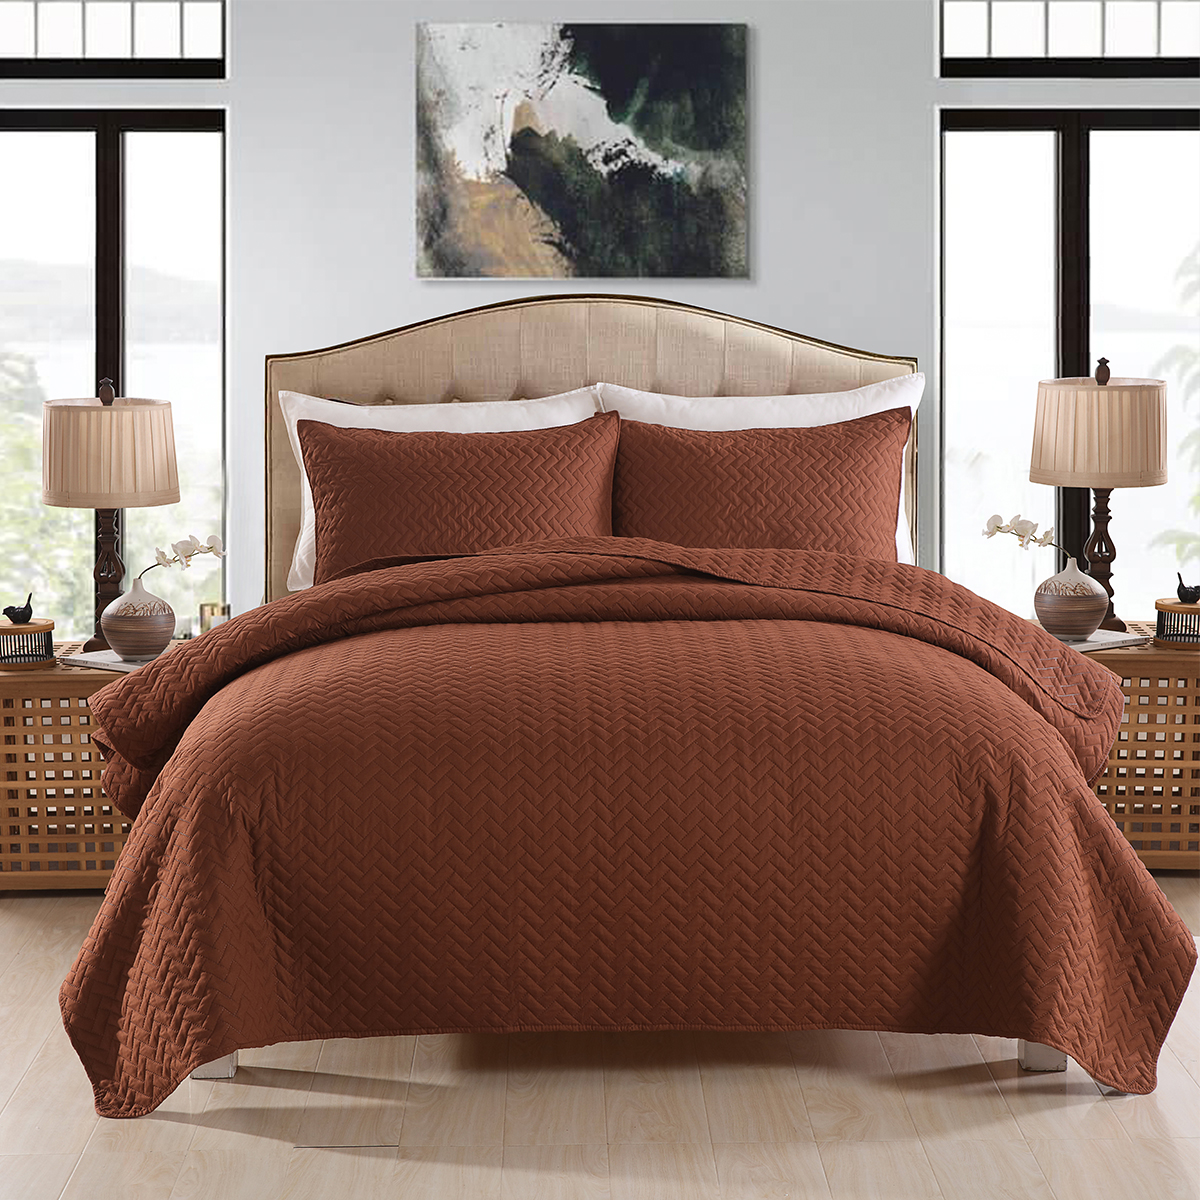 Coffee Brown Quilt Set Bedspread Zig Zag Soft Reversible Bedding Cover